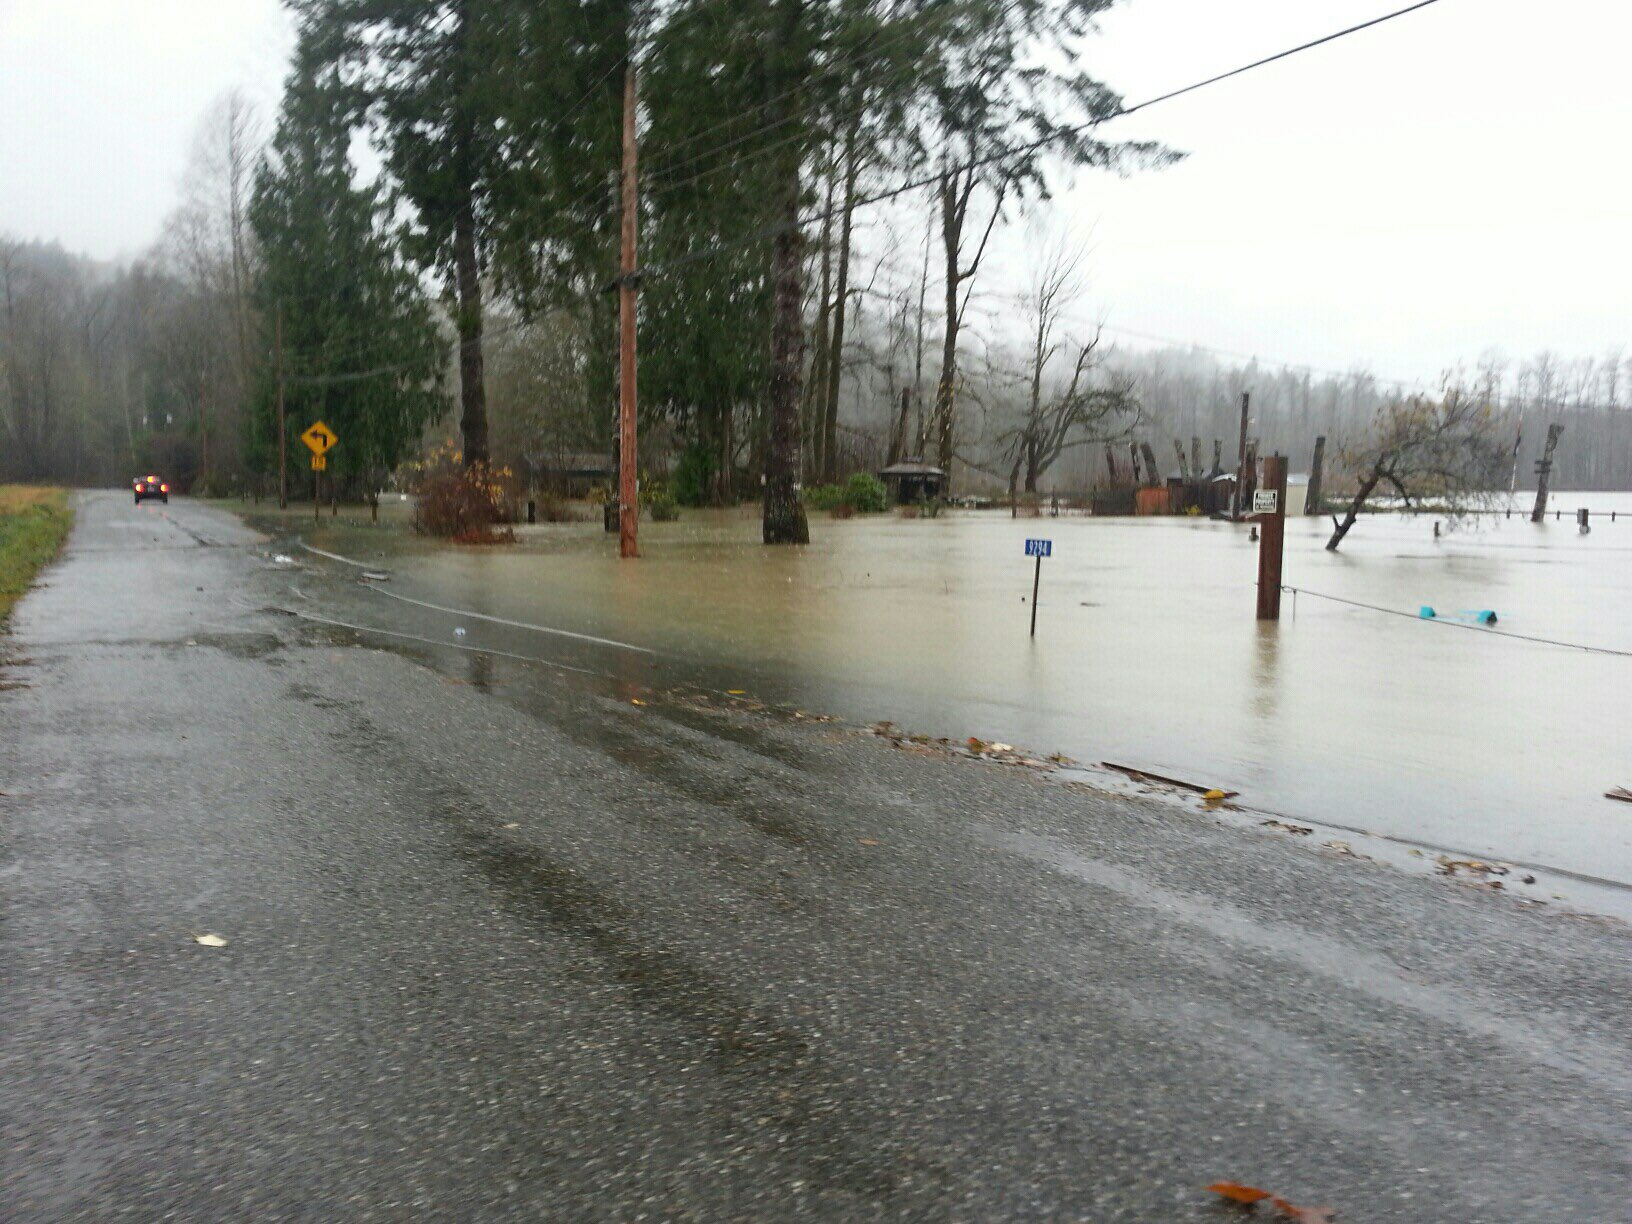 In the small town of Concrete in Skagit County, many residents woke up to flooded roads from the Skagit River, which has reached &quot;major&quot; flood status. (Photo:{&amp;nbsp;}Skagit County DEM)<p></p>